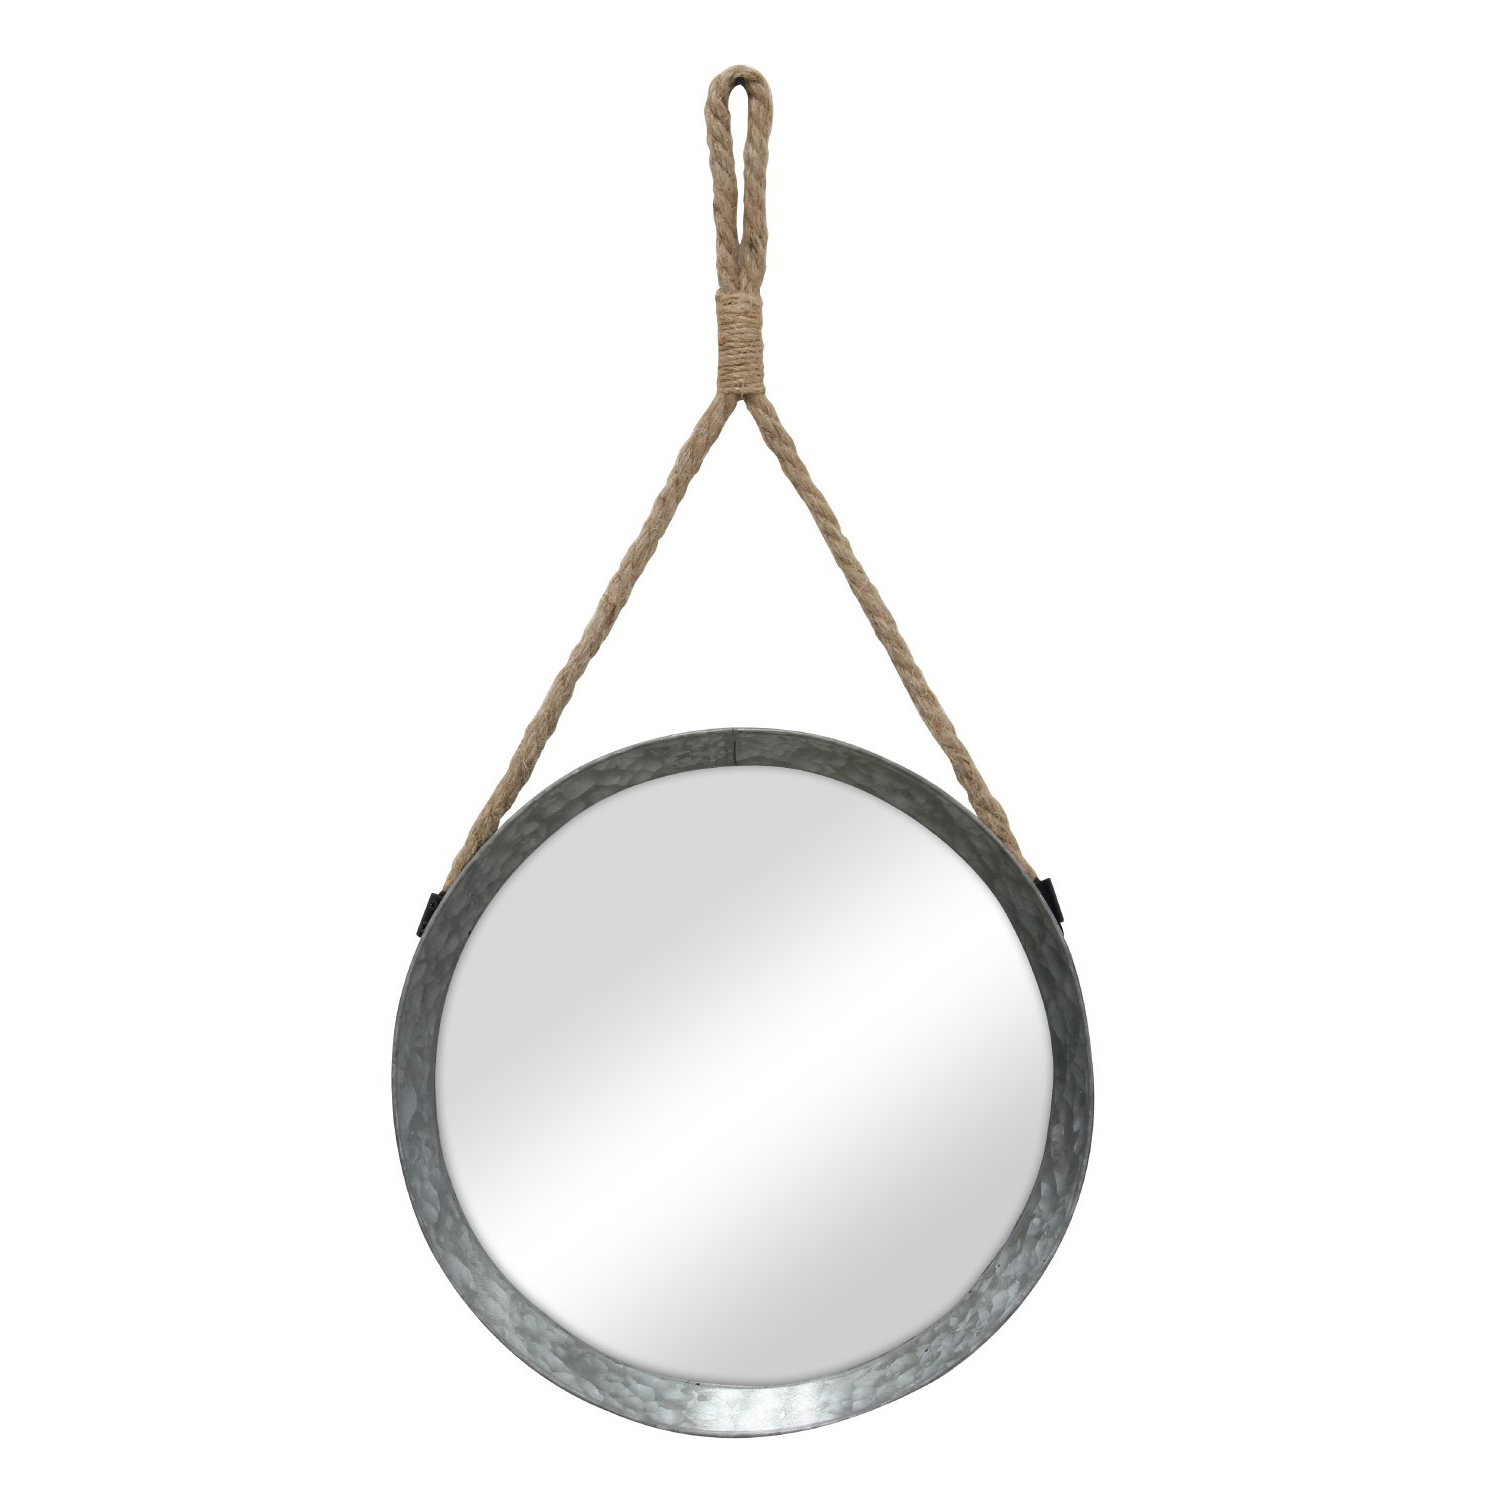 Round Galvanized Metallic Wall Mirrors Inside 2019 Stonebriar Rustic Round Galvanized Metal Mirror With Rope Hanging Loop ;  Farmhouse Home Decor ; For Bathroom, Bedroom, And Living Room (Gallery 15 of 20)